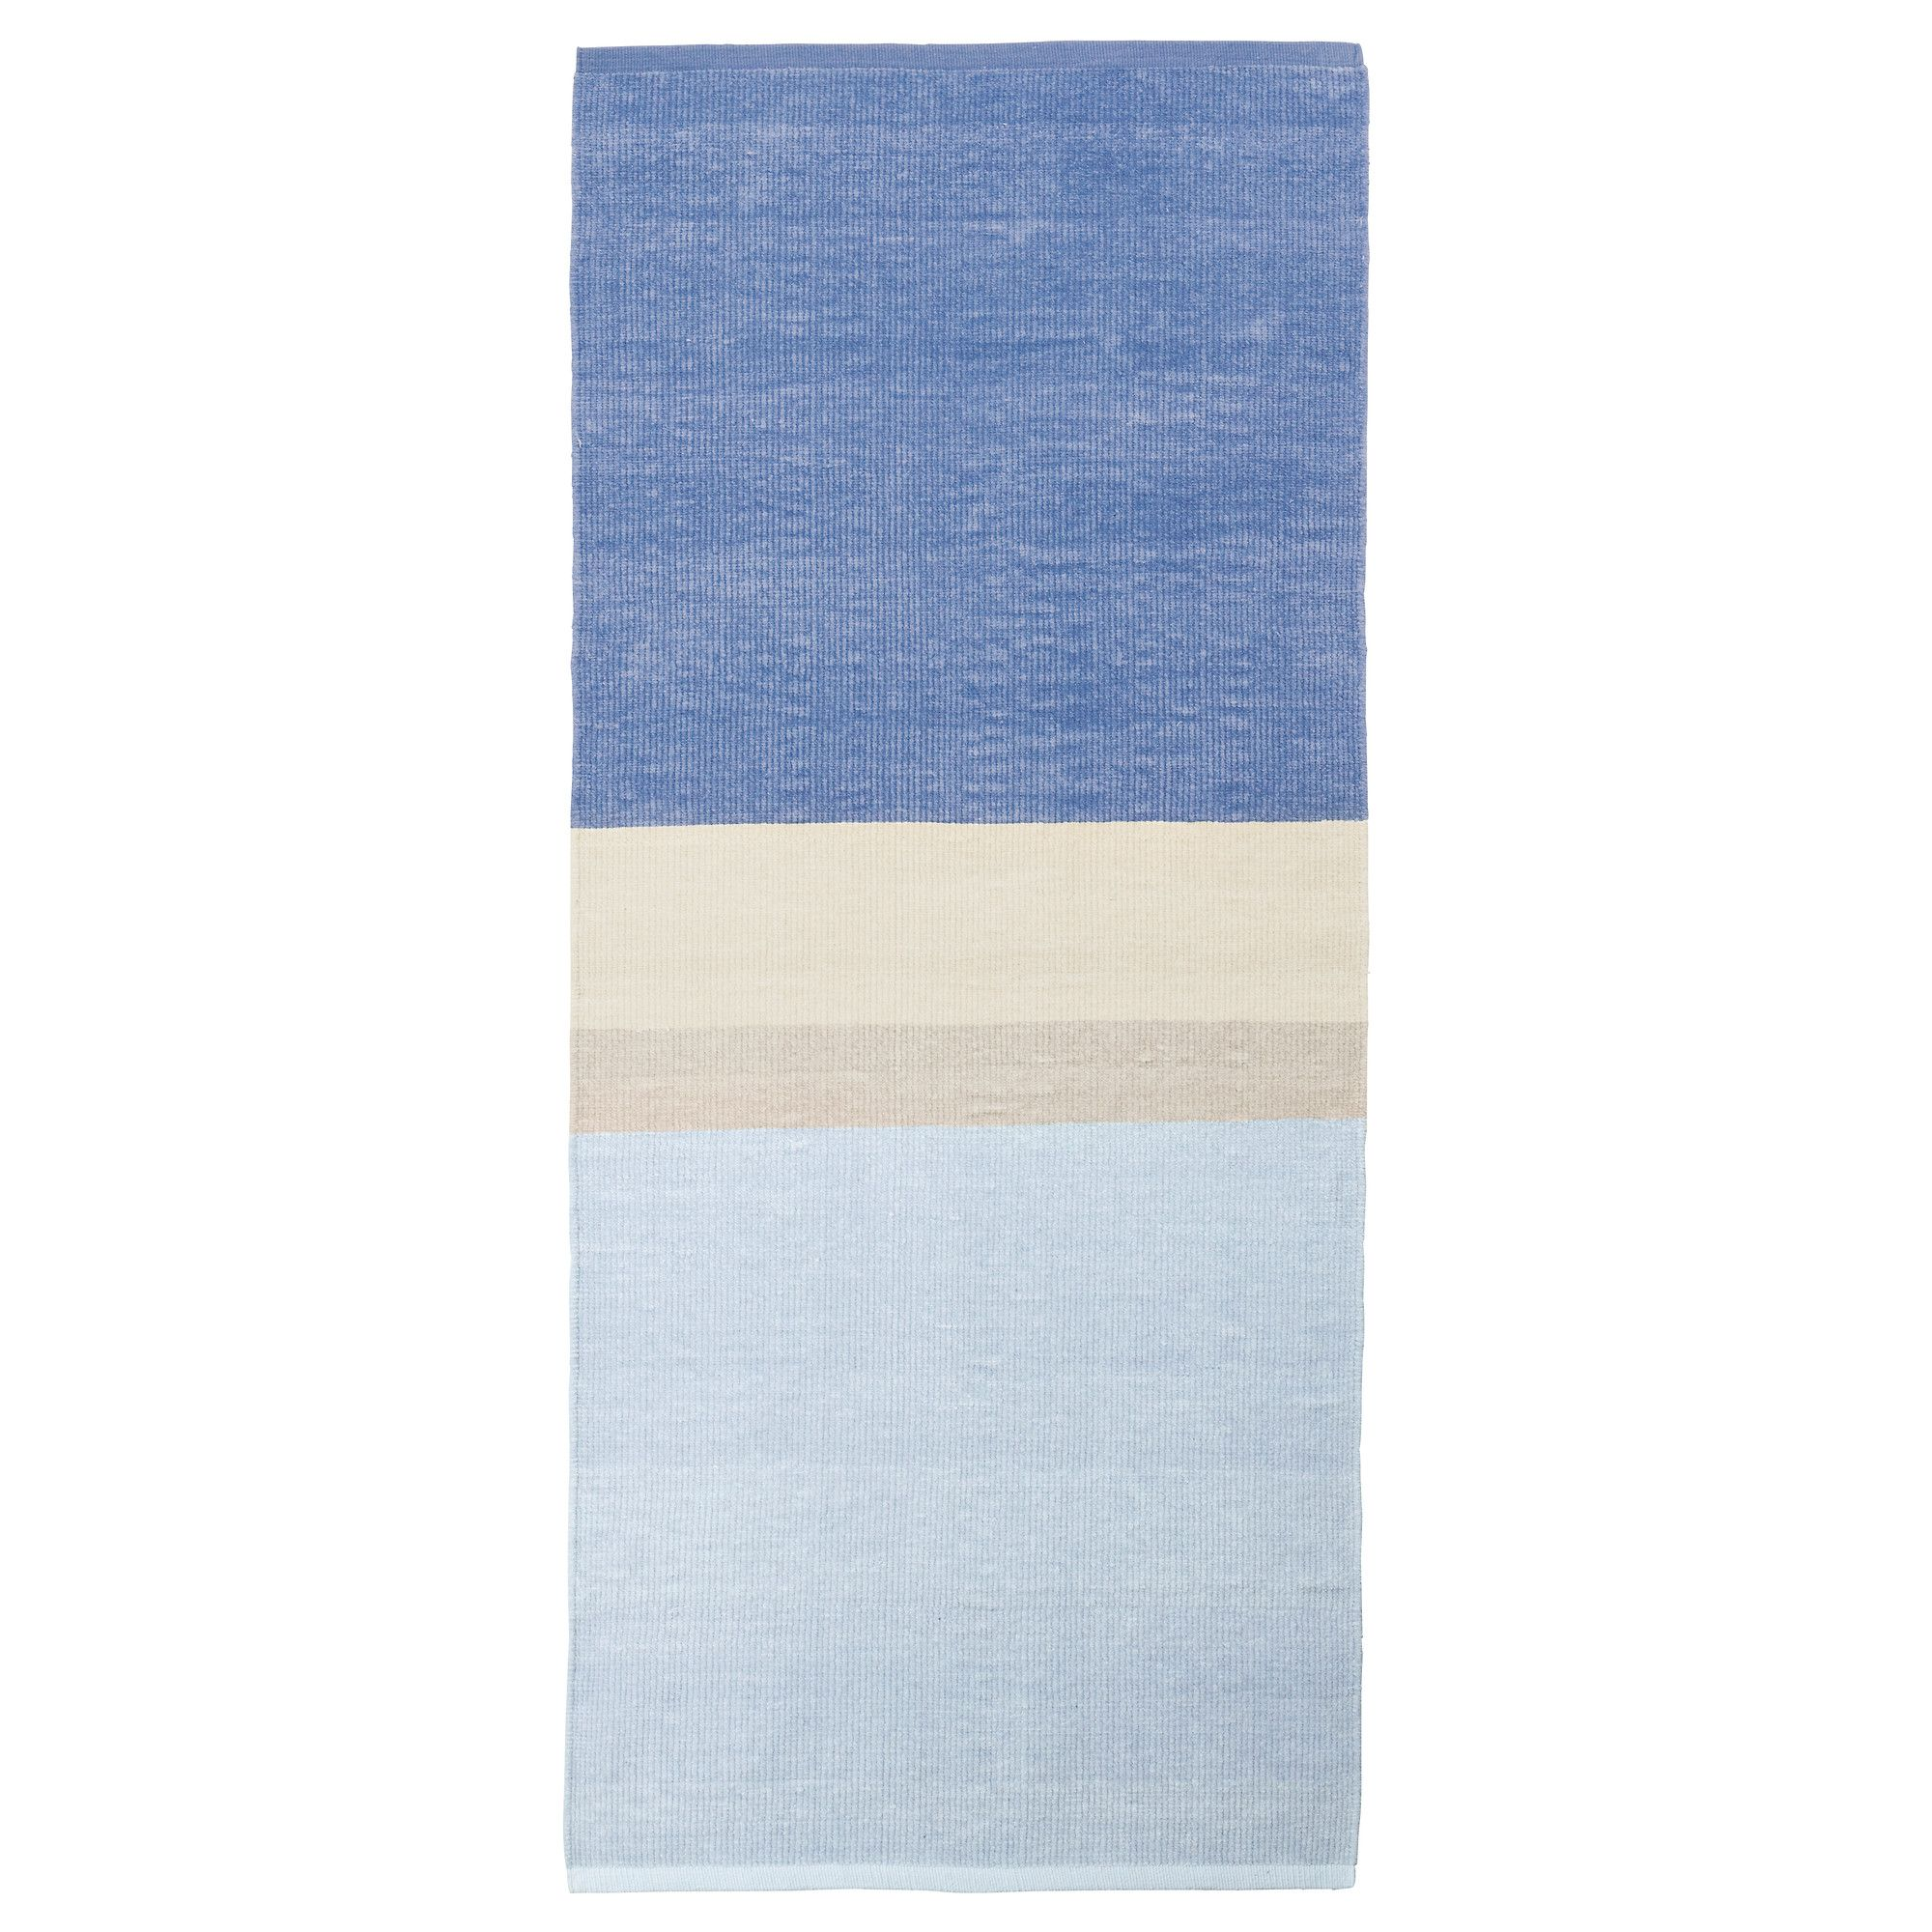 RENATE Rug, low pile - blue - IKEA On either side of our bed ...